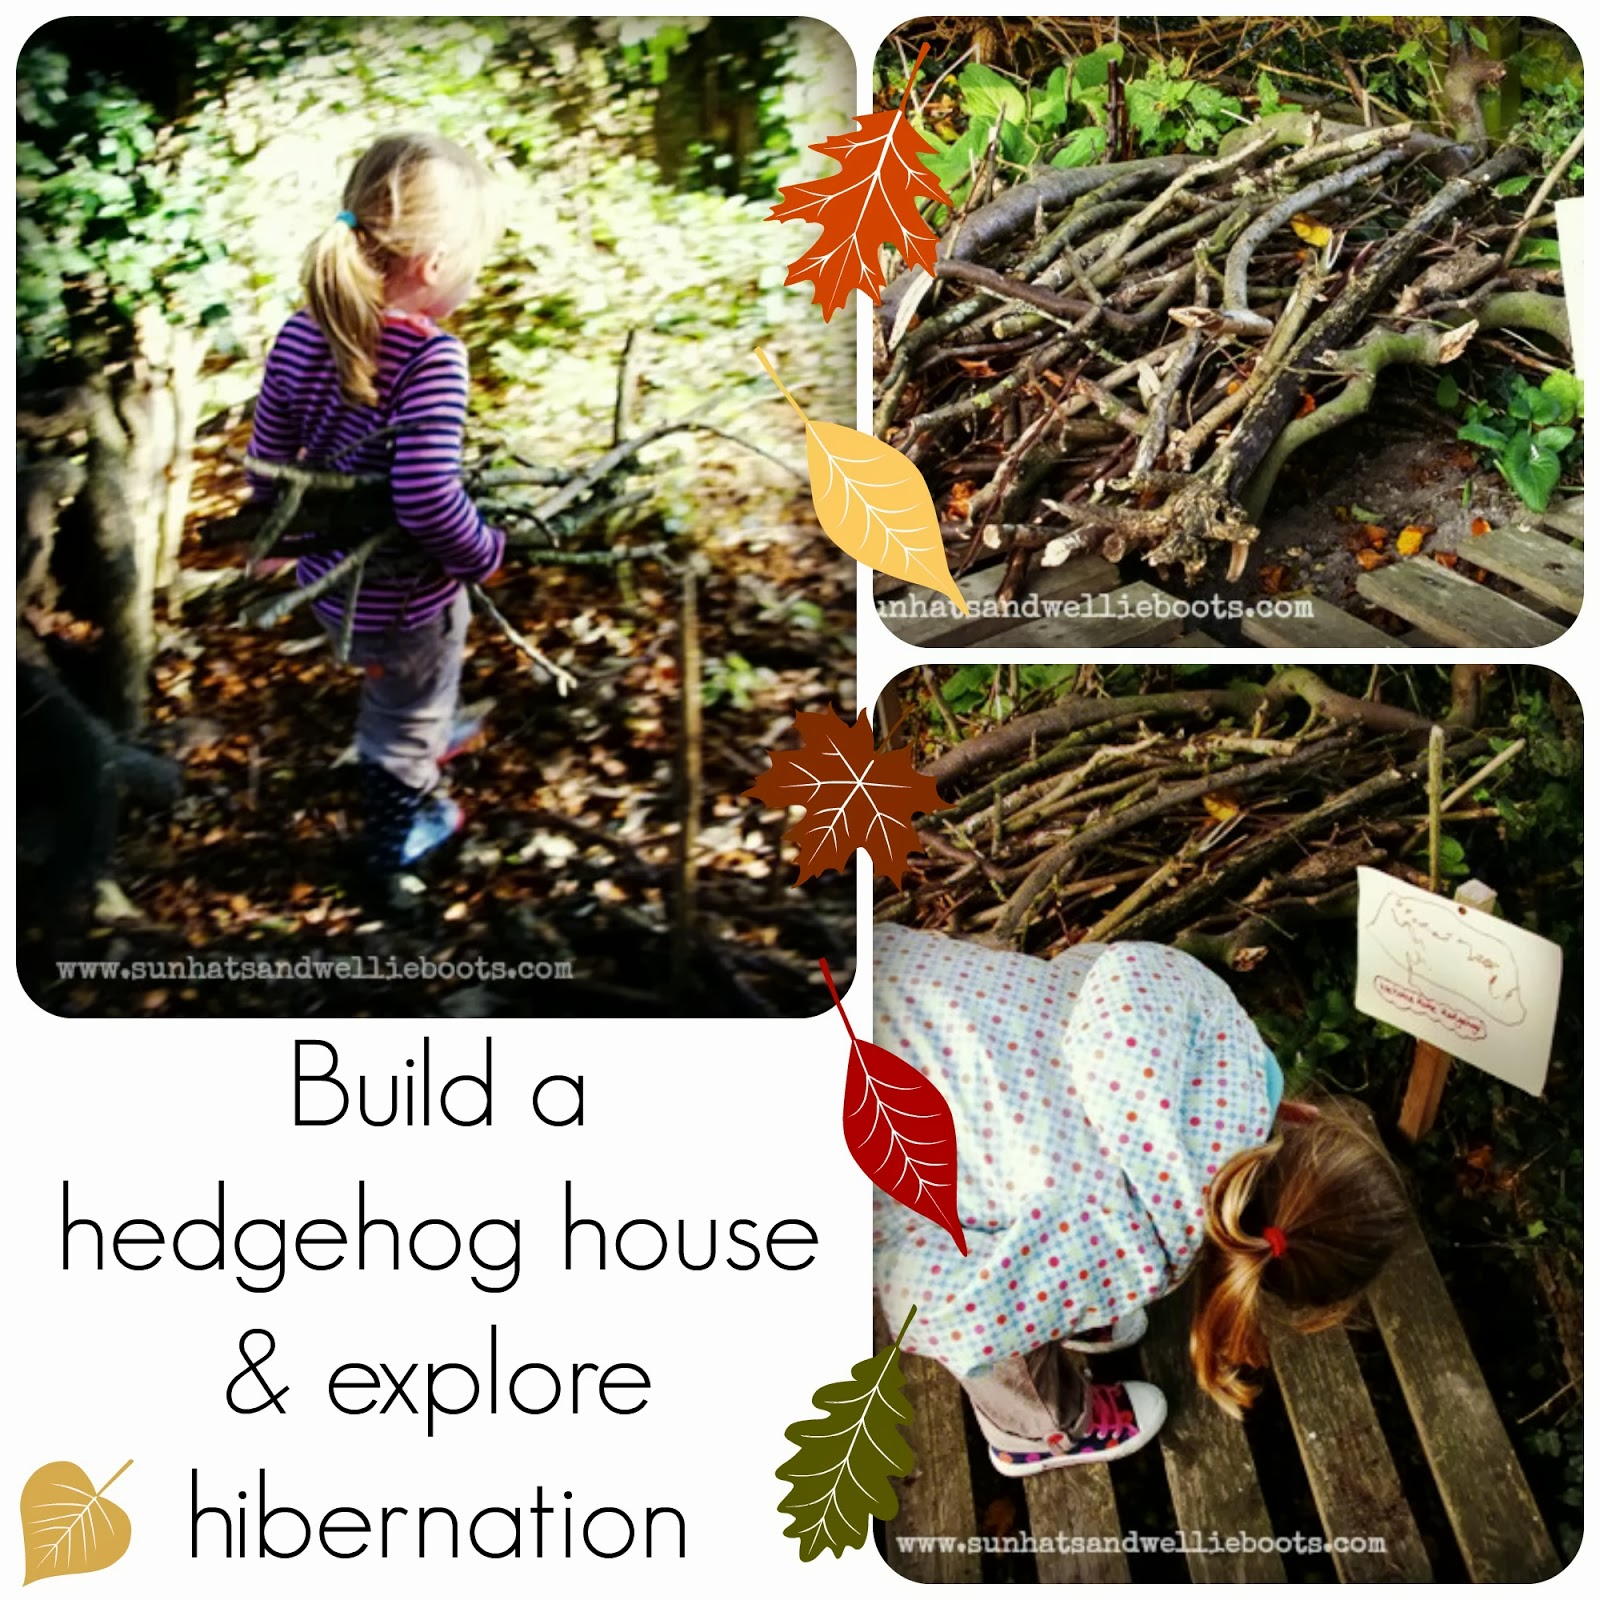 Sun Hats Amp Wellie Boots Build Your Own Hedgehog House